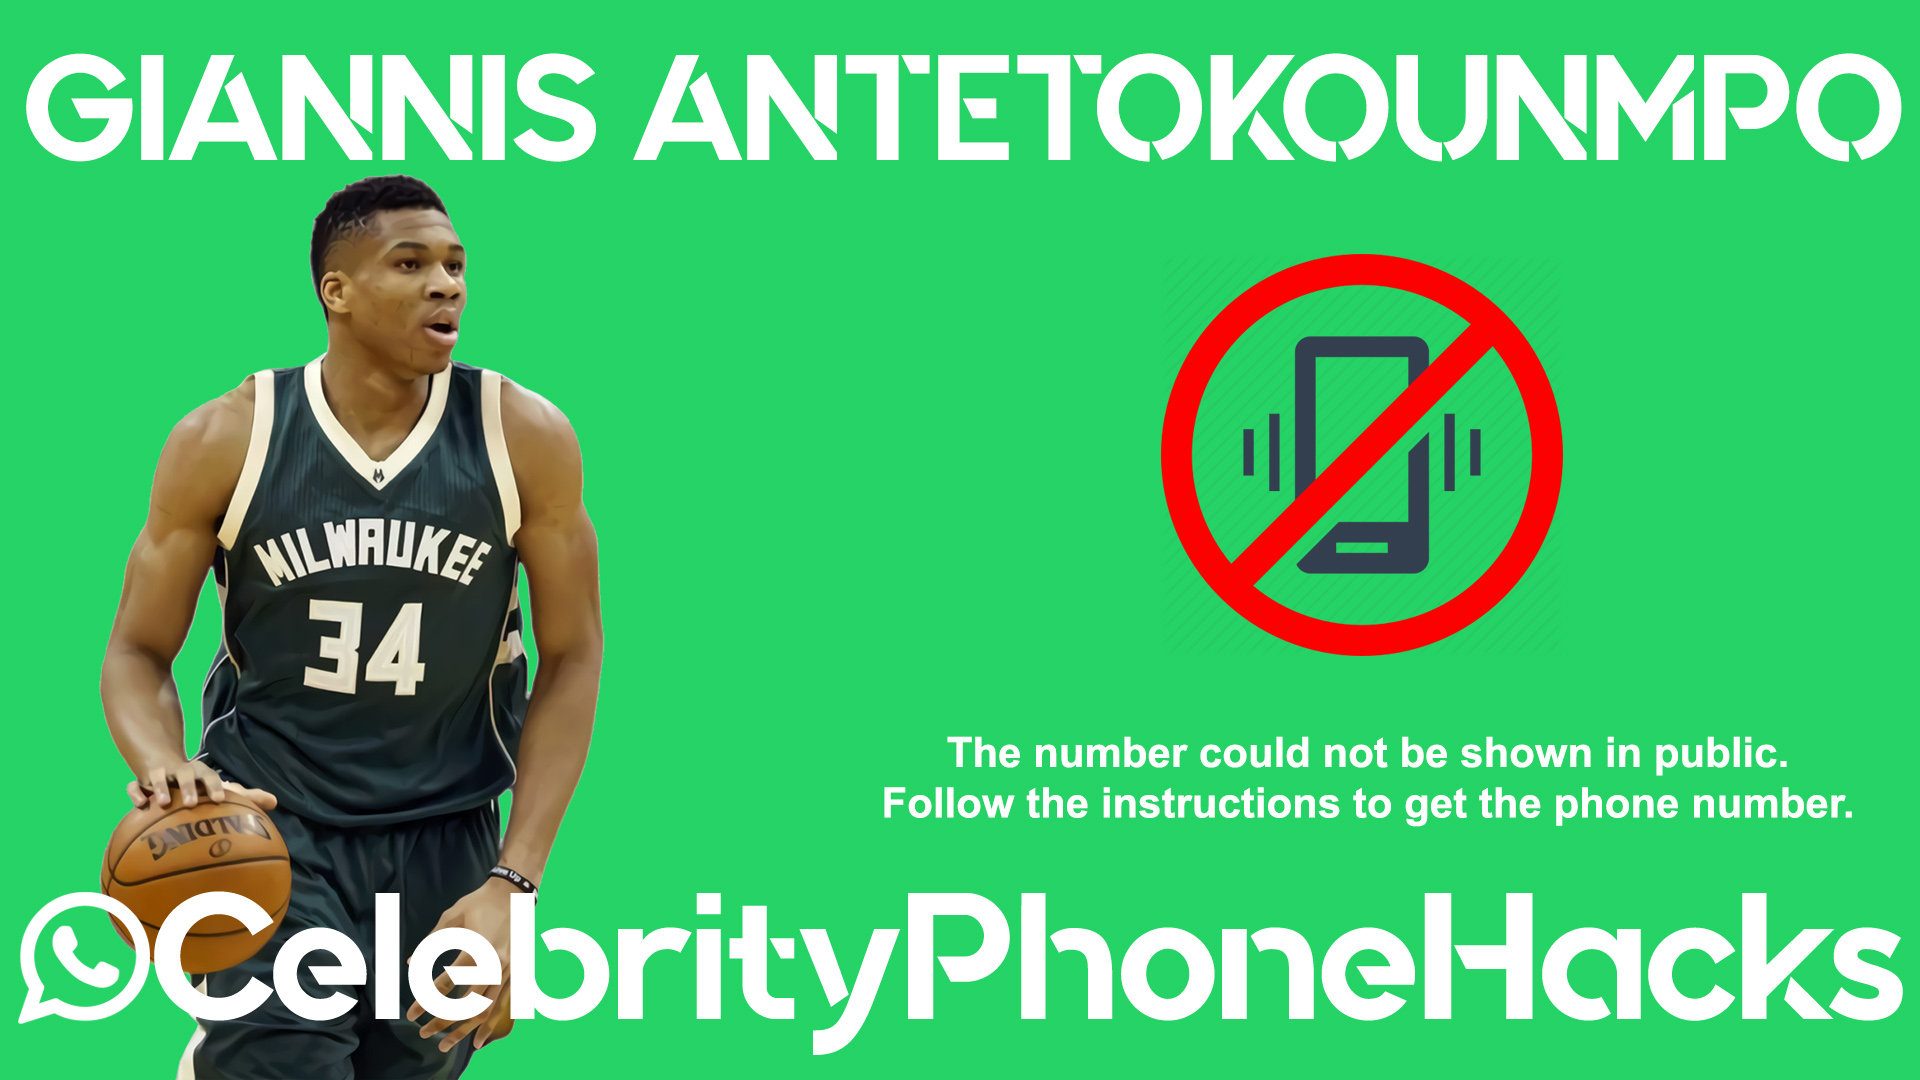 Giannis Antetokounmpo Phone Number Leaked Celebrity Phone